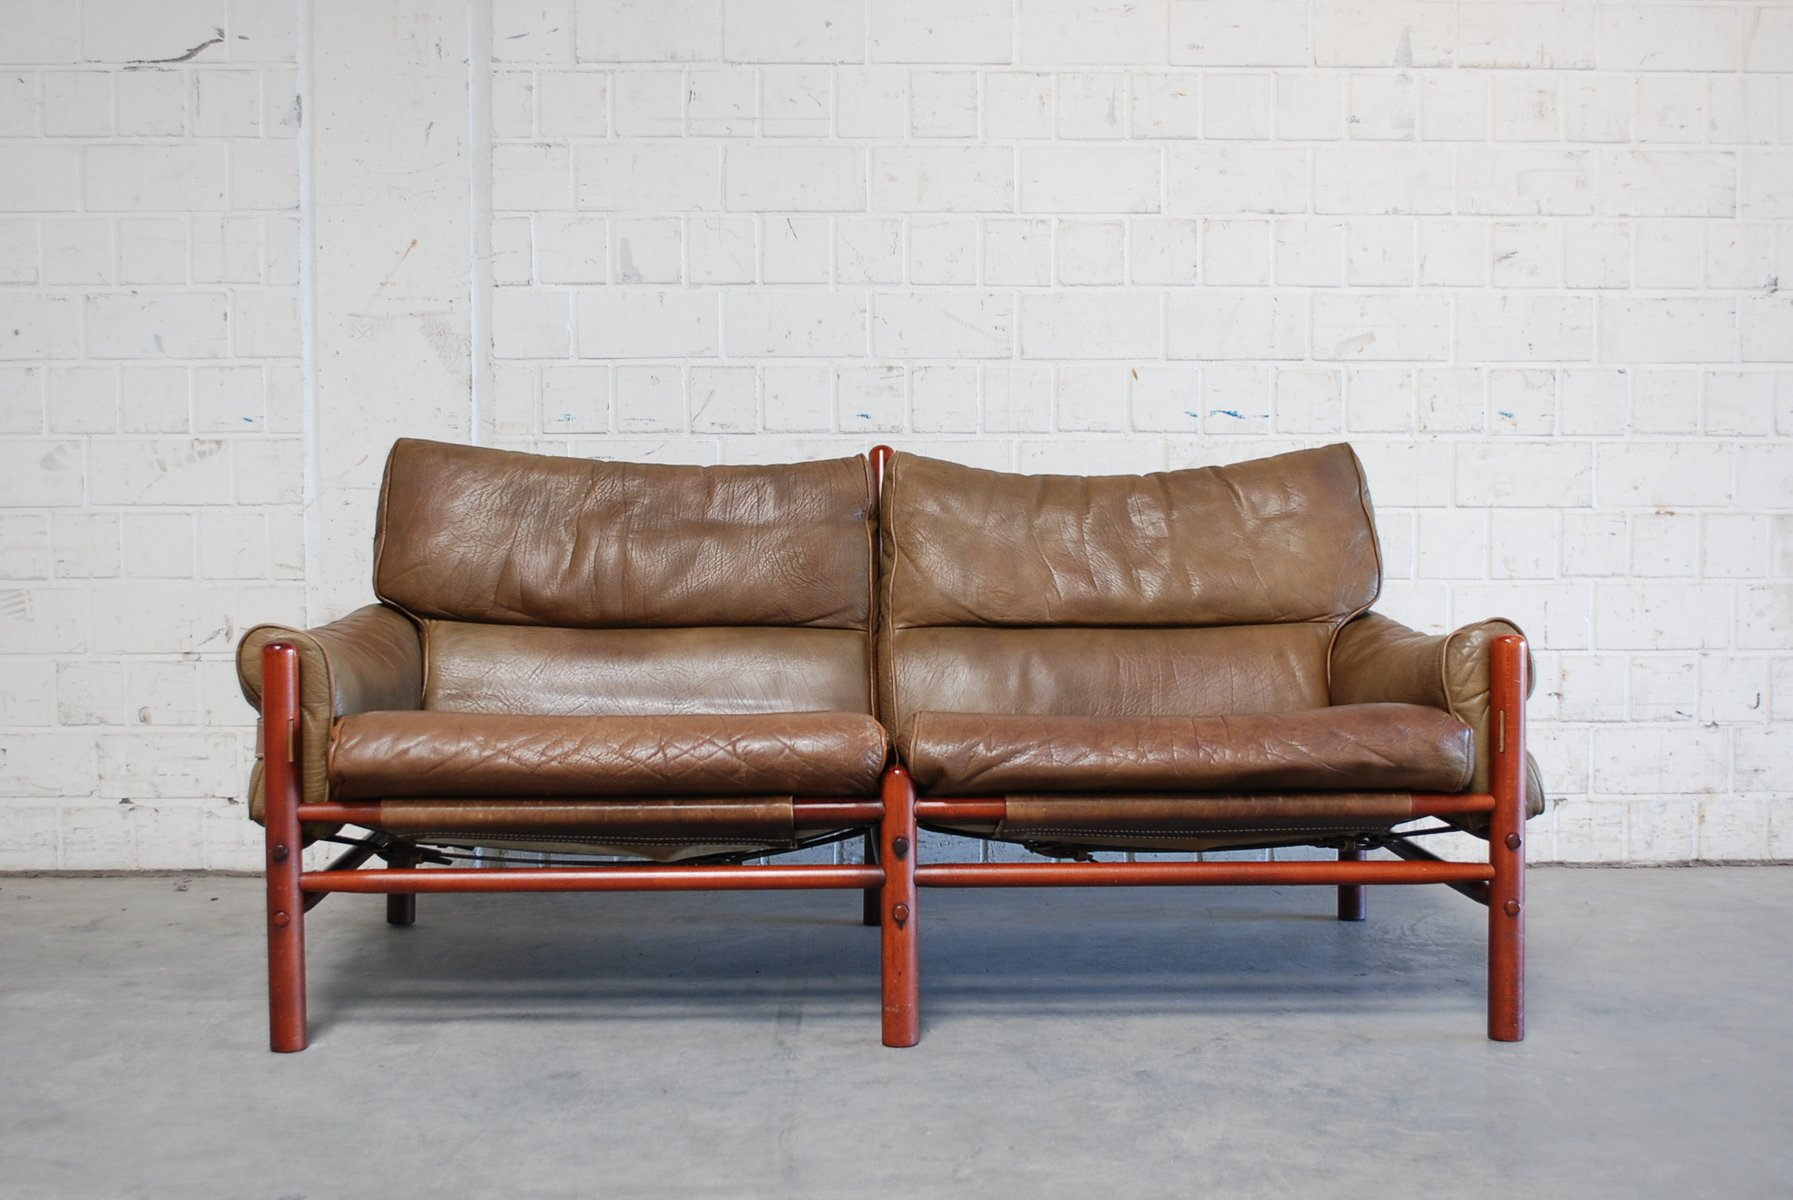 Vintage Leather Sofas Large Vintage Leather Sofa Chairs Thesofa